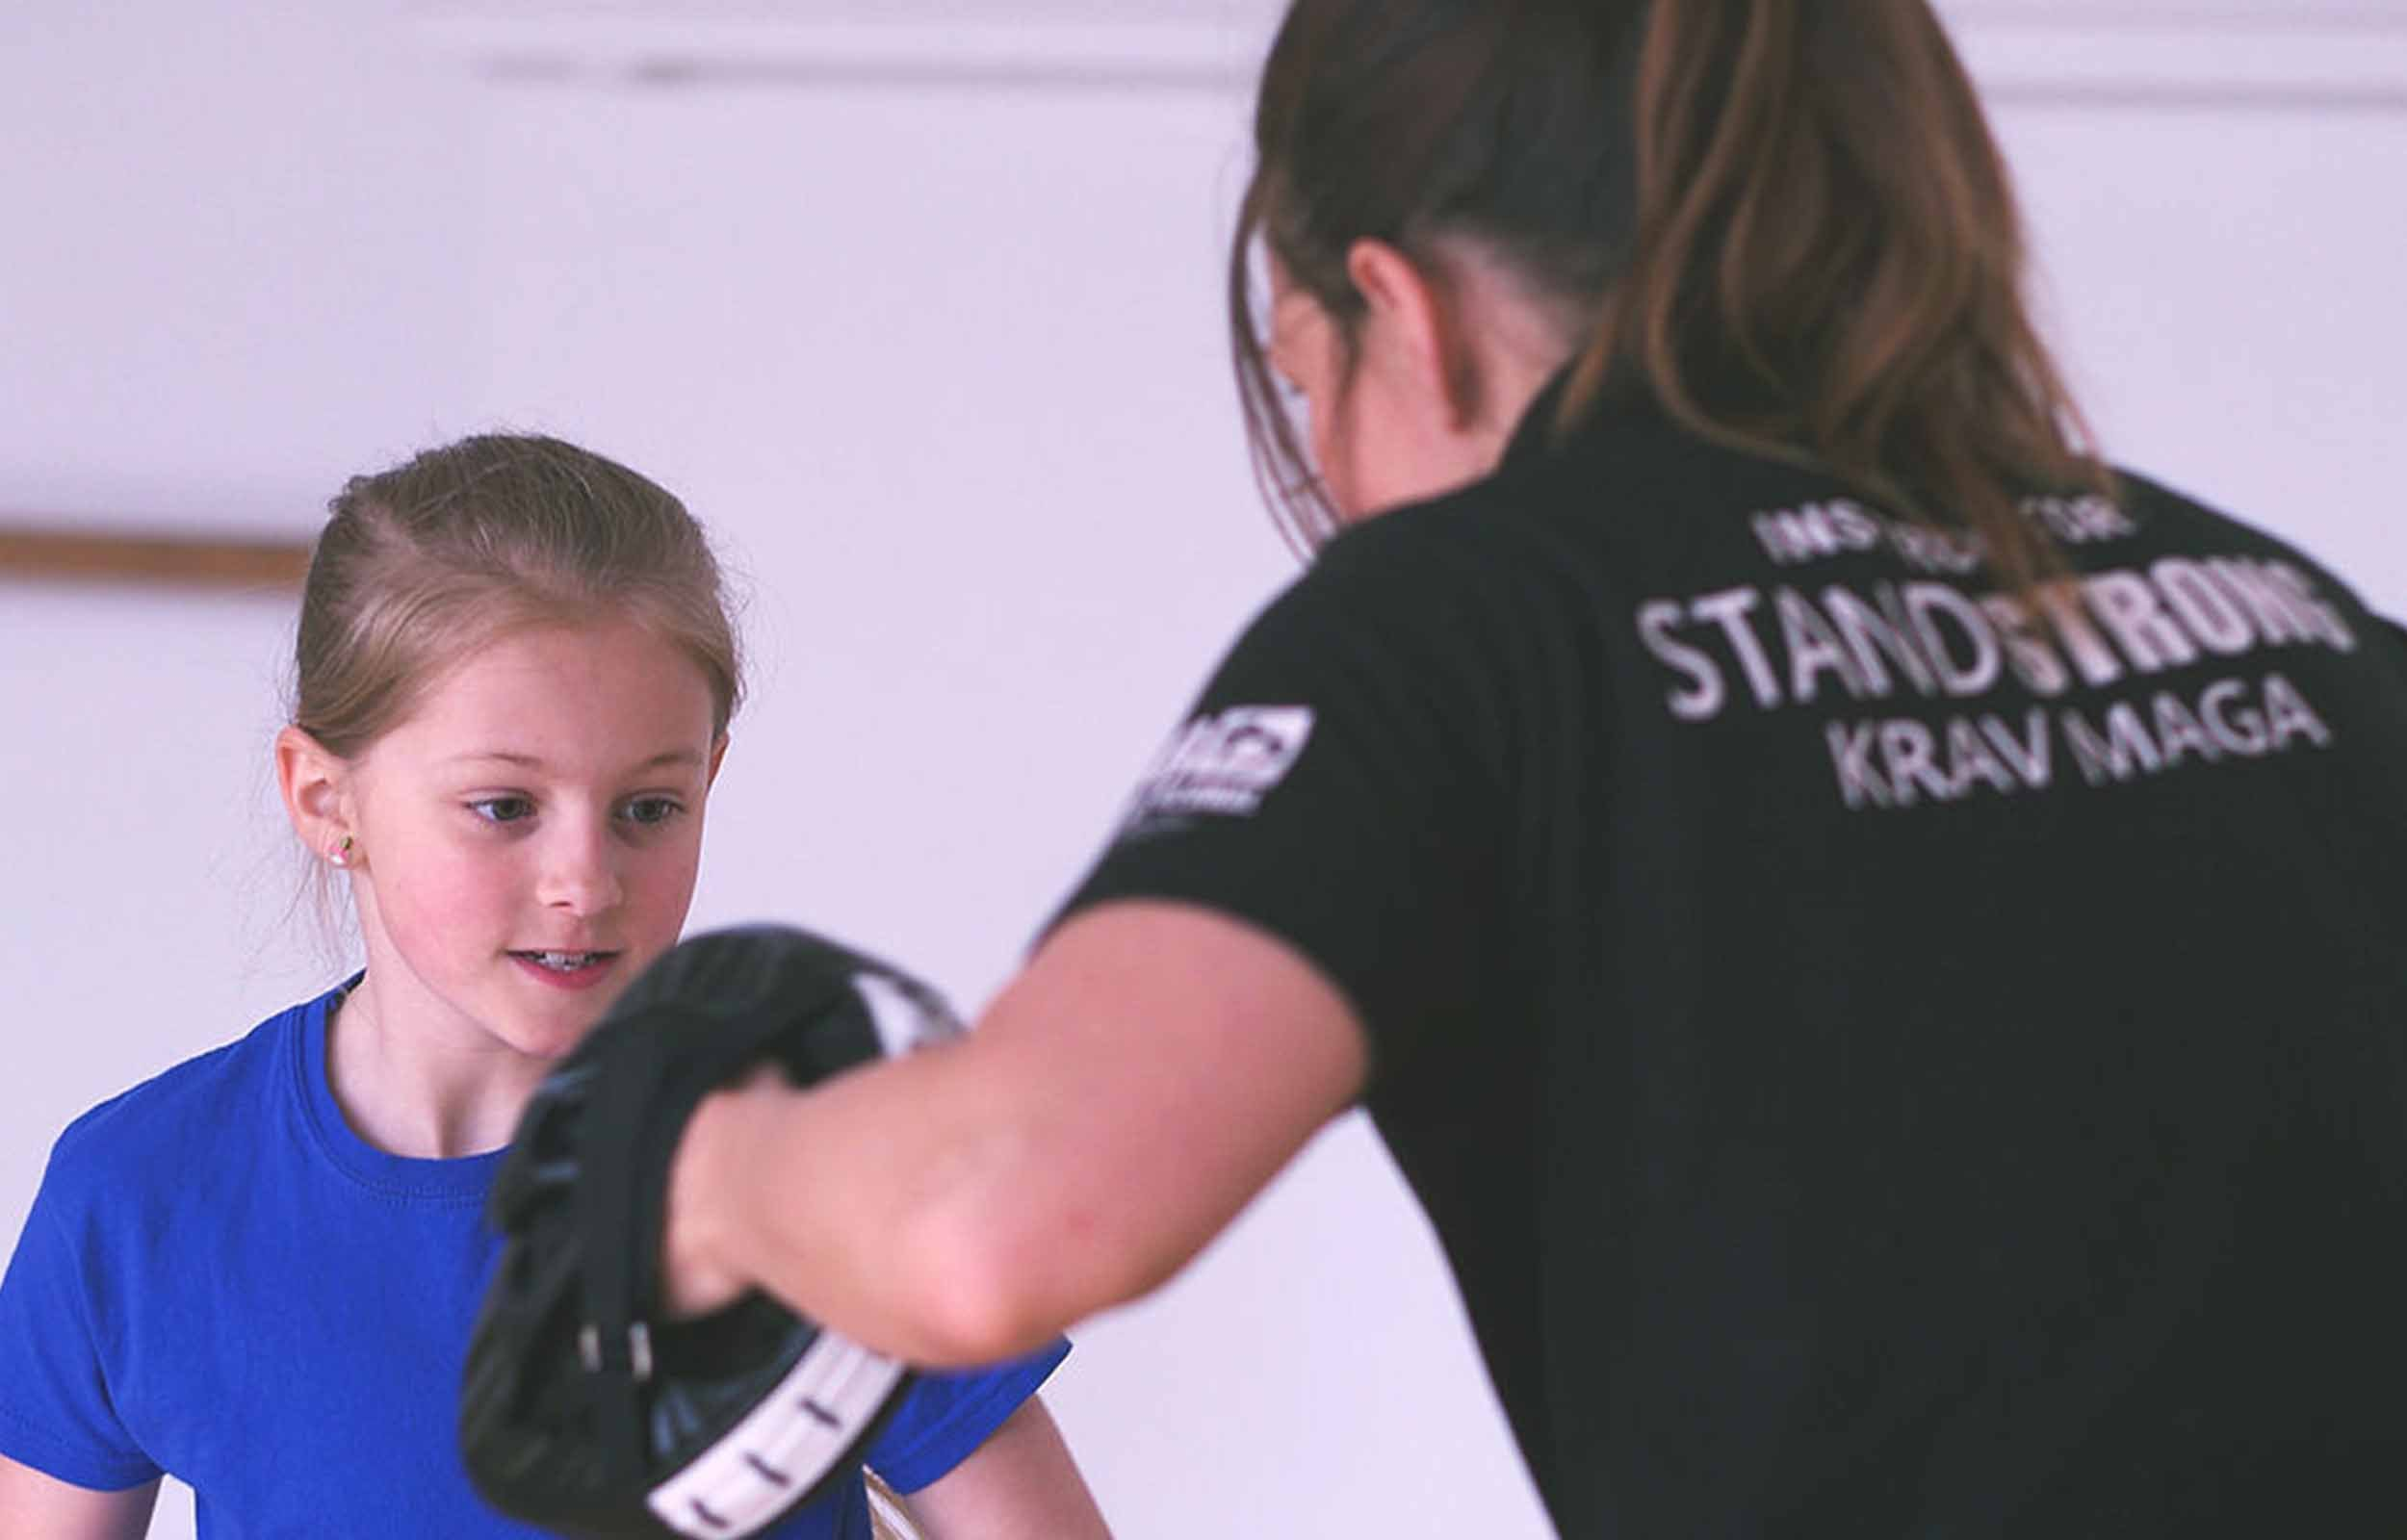 StandStrong Krav Maga children's classes